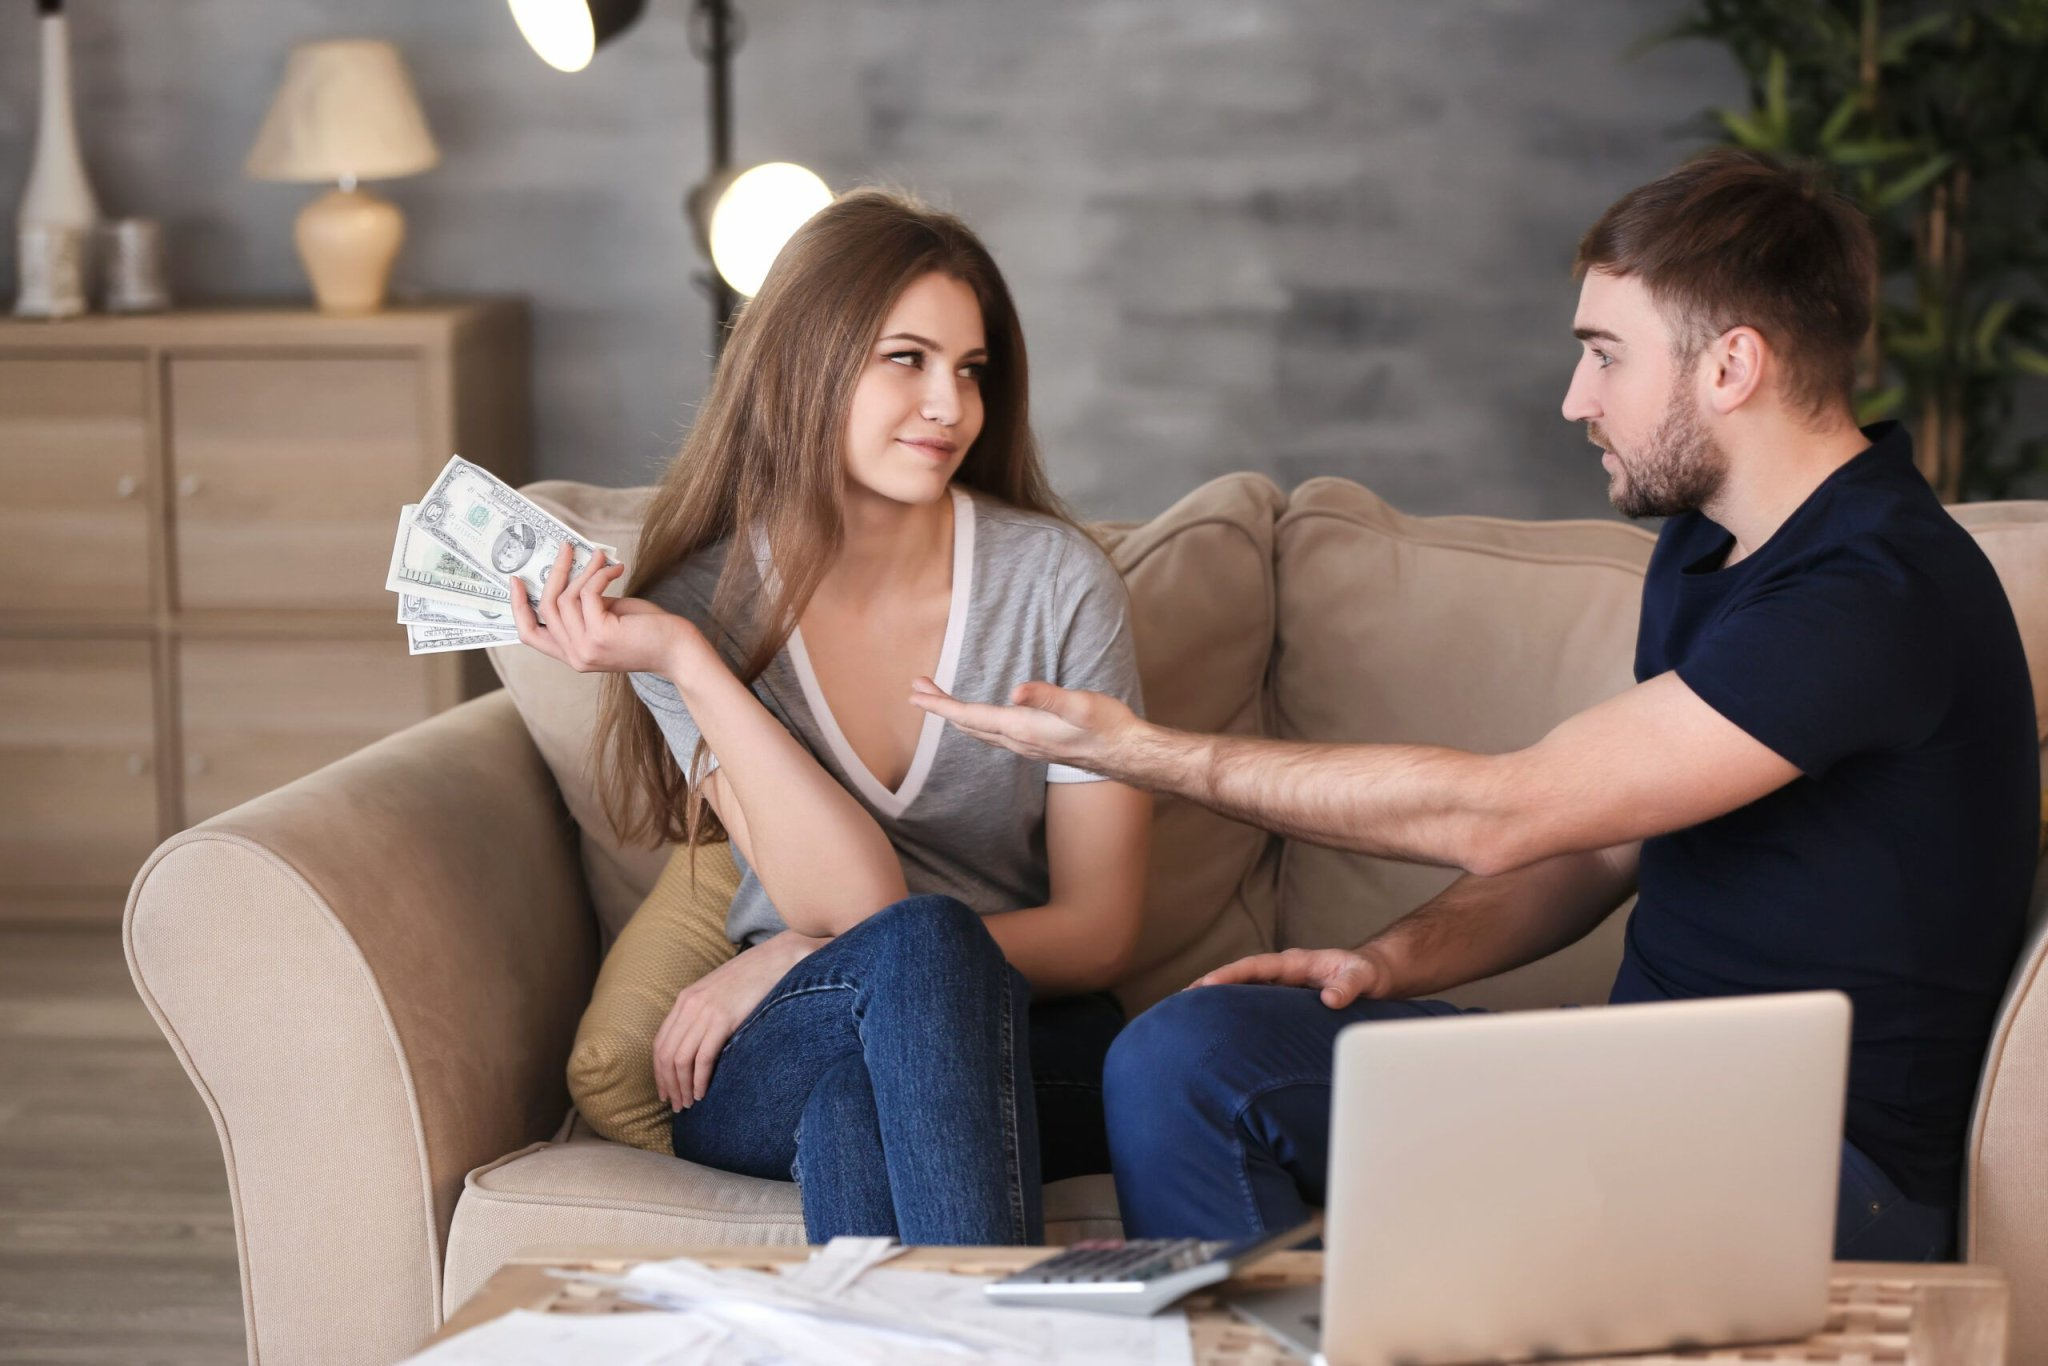 How to Handle Awkward Money Moments